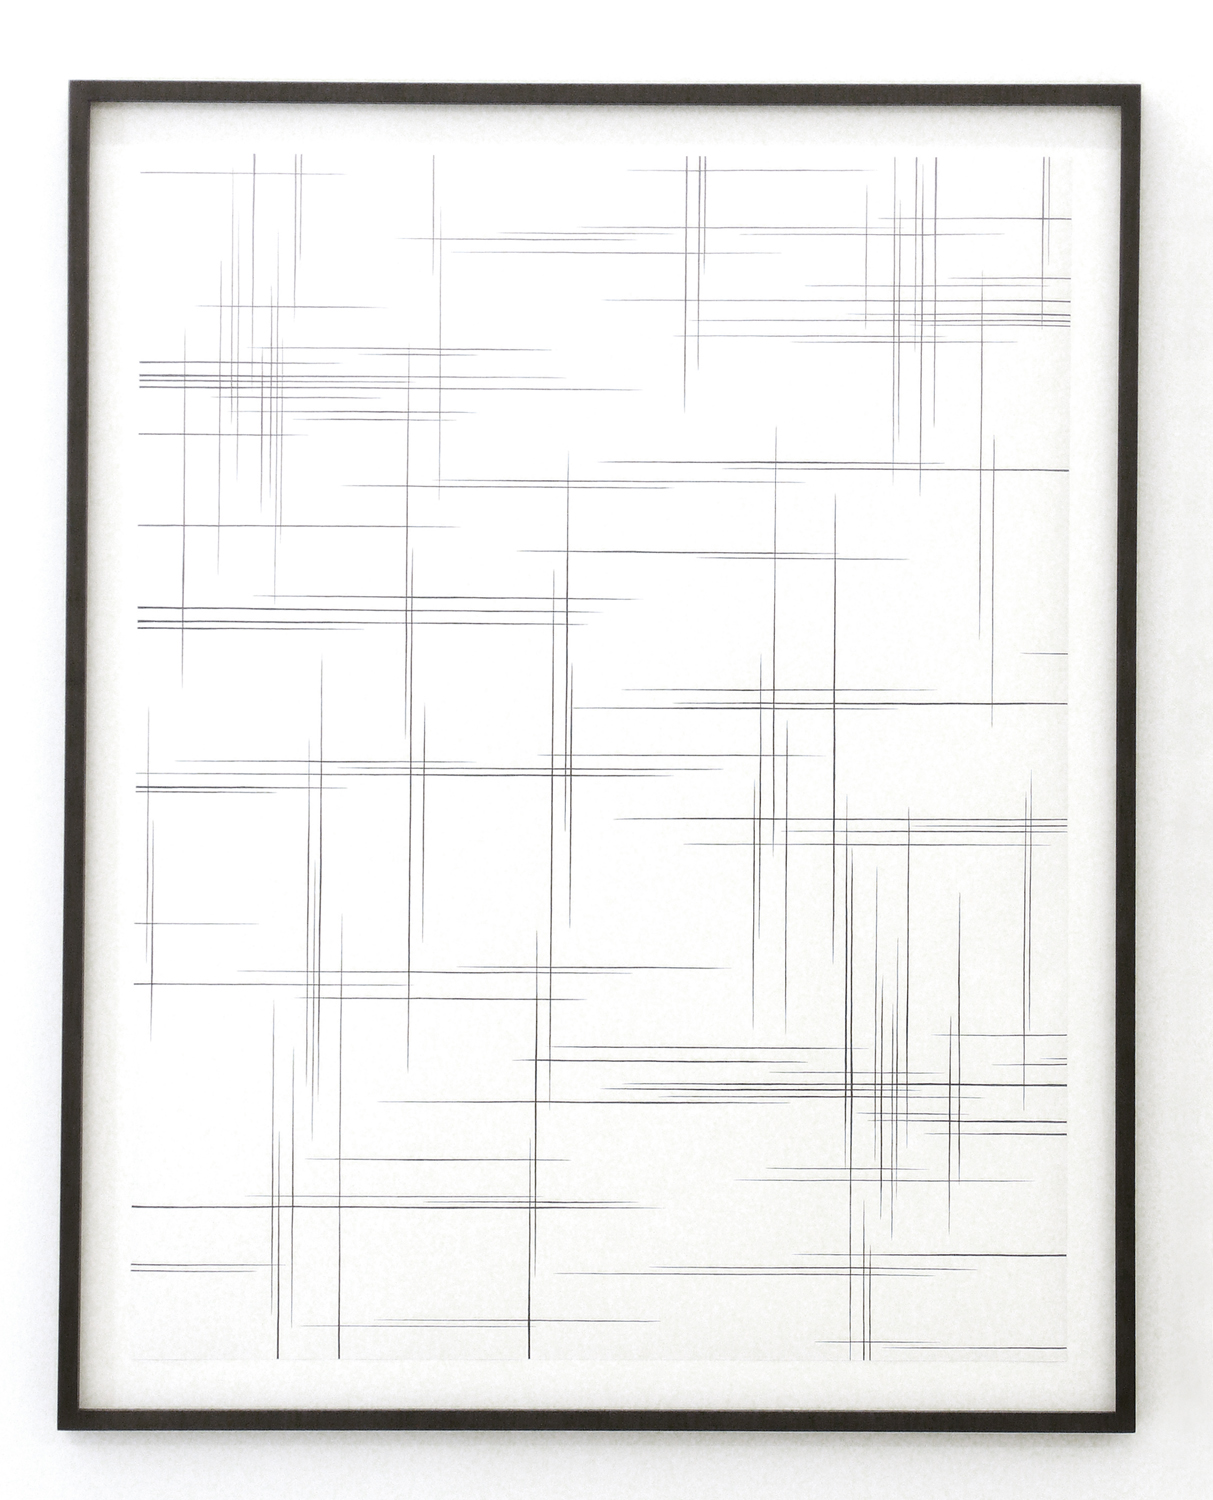 dust lll  , 2011, pencil on paper, 110 x 86cm   hyle, 2011, Lullin + Ferrari, Zürich